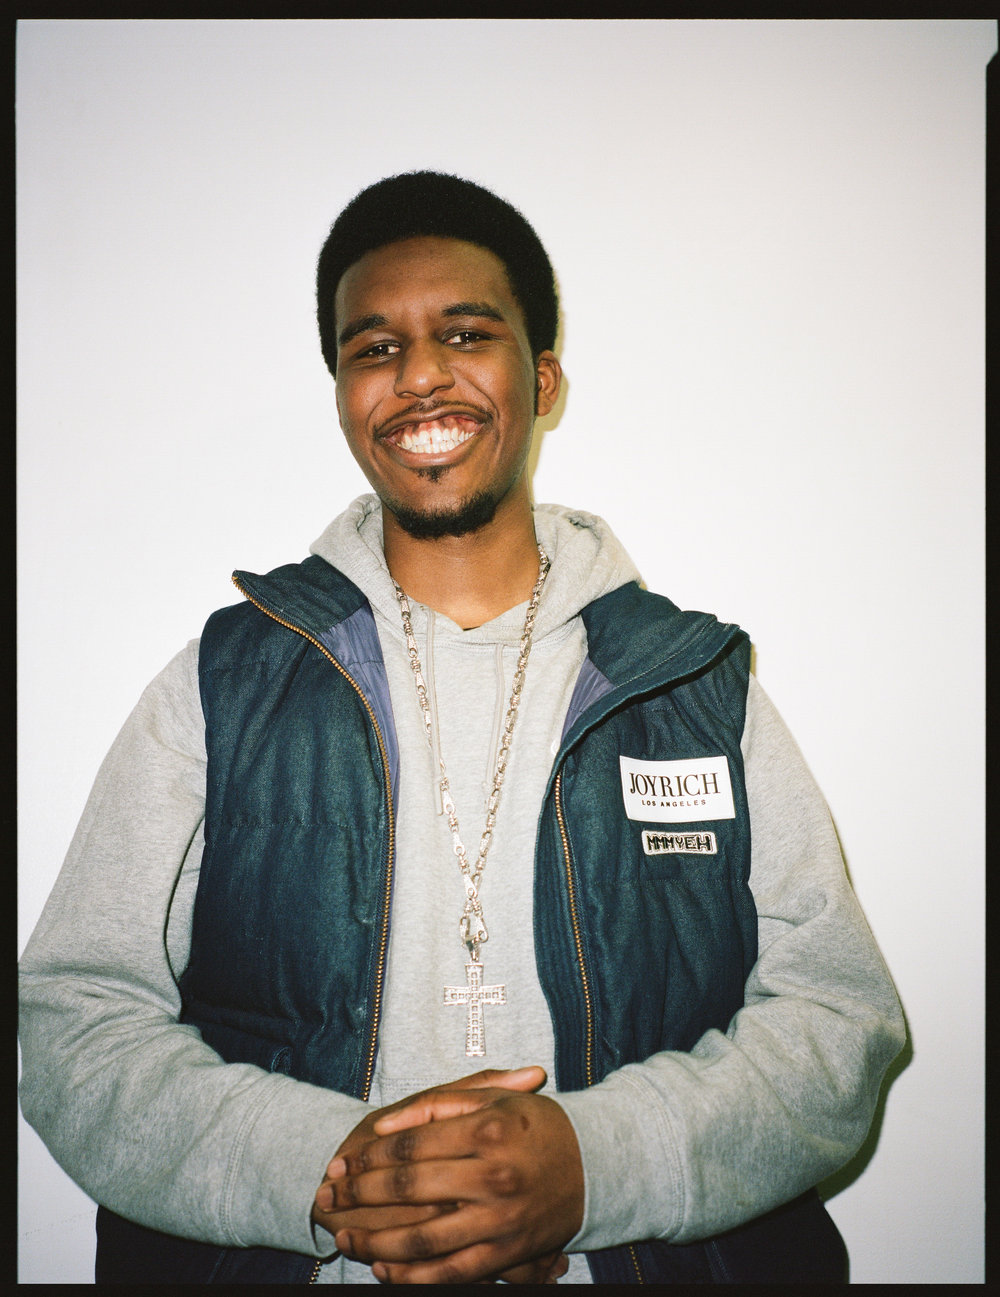 Novelist backstage at Wiley's Roundhouse show, Feb 2017